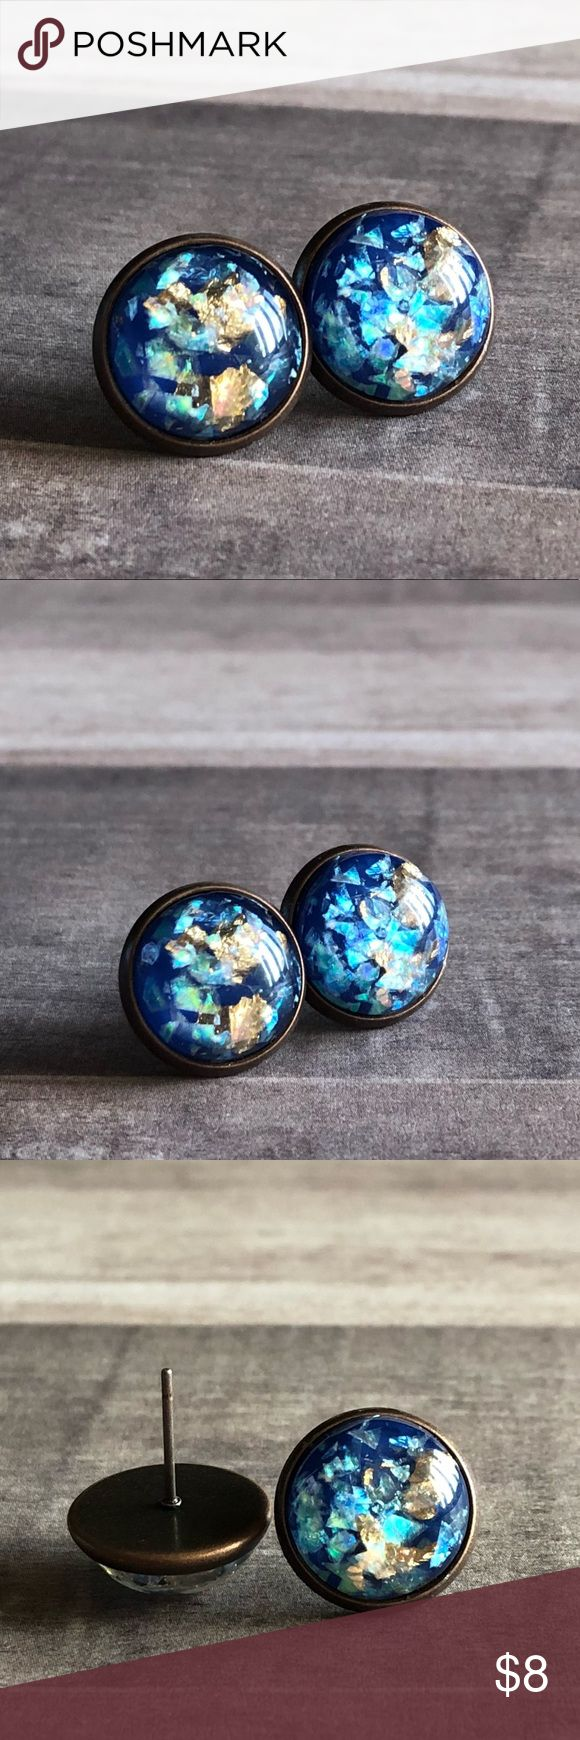 """🆕Blue Opal Gold Metal Foil Bronze Stud Earrings! New, Handmade by Me! 🆕Style! Opal Stone mixed with Gold Metal! Listing in White, Black & Dark Blue; This listing is for the Blue Stone in Copper Post Backs; Approx. 12mm or 1/2"""" Size; Can make in any Style Back Shown!📸These are my pic's of the Actual items!  ▶️1 For $8, 2 For $13, 3 For $15!◀️  ▪️3-$15 is only for items listed as such▪️ ▪️Post Back for Pierced Ears ▪️Nickel, Lead & Cadmium Free  *NO TRADES *Price is FIRM as Listed!  *Sales…"""